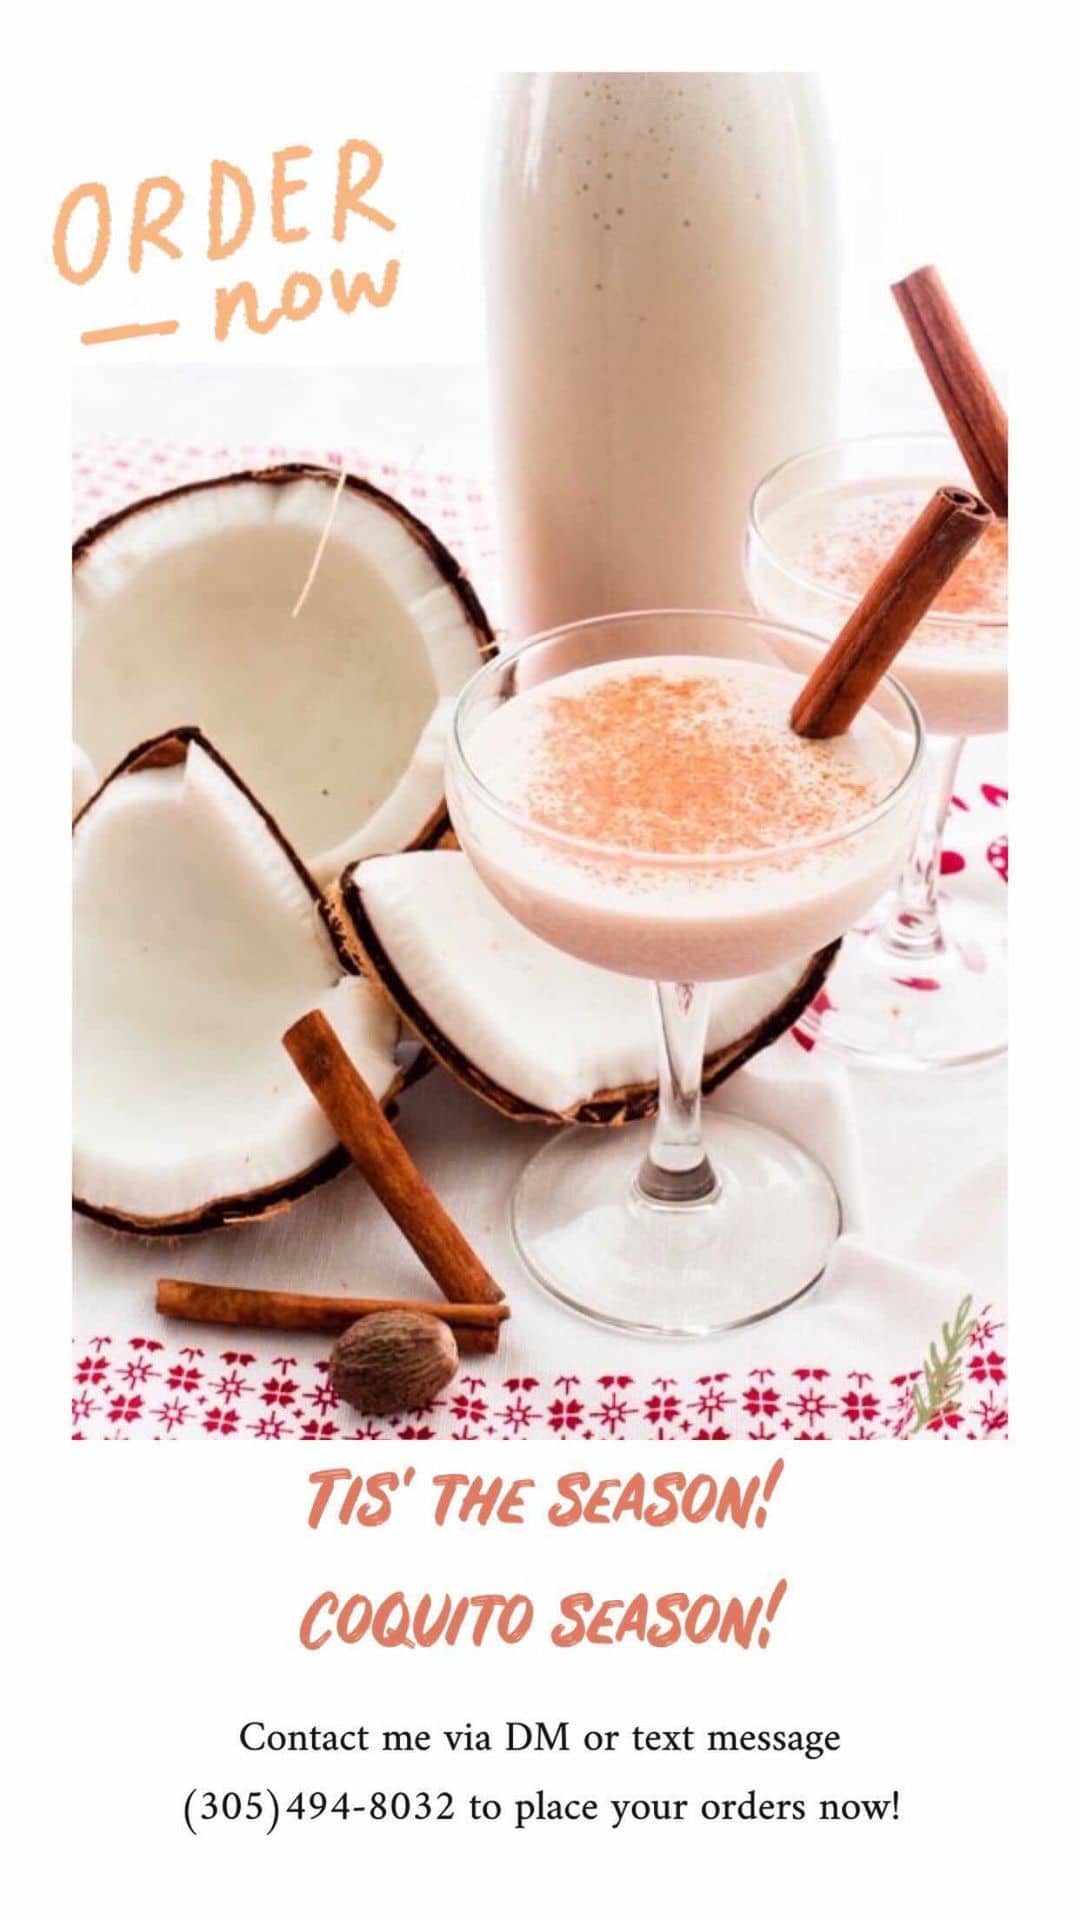 Where to get coquito in Miami: Maylen Rodriguez